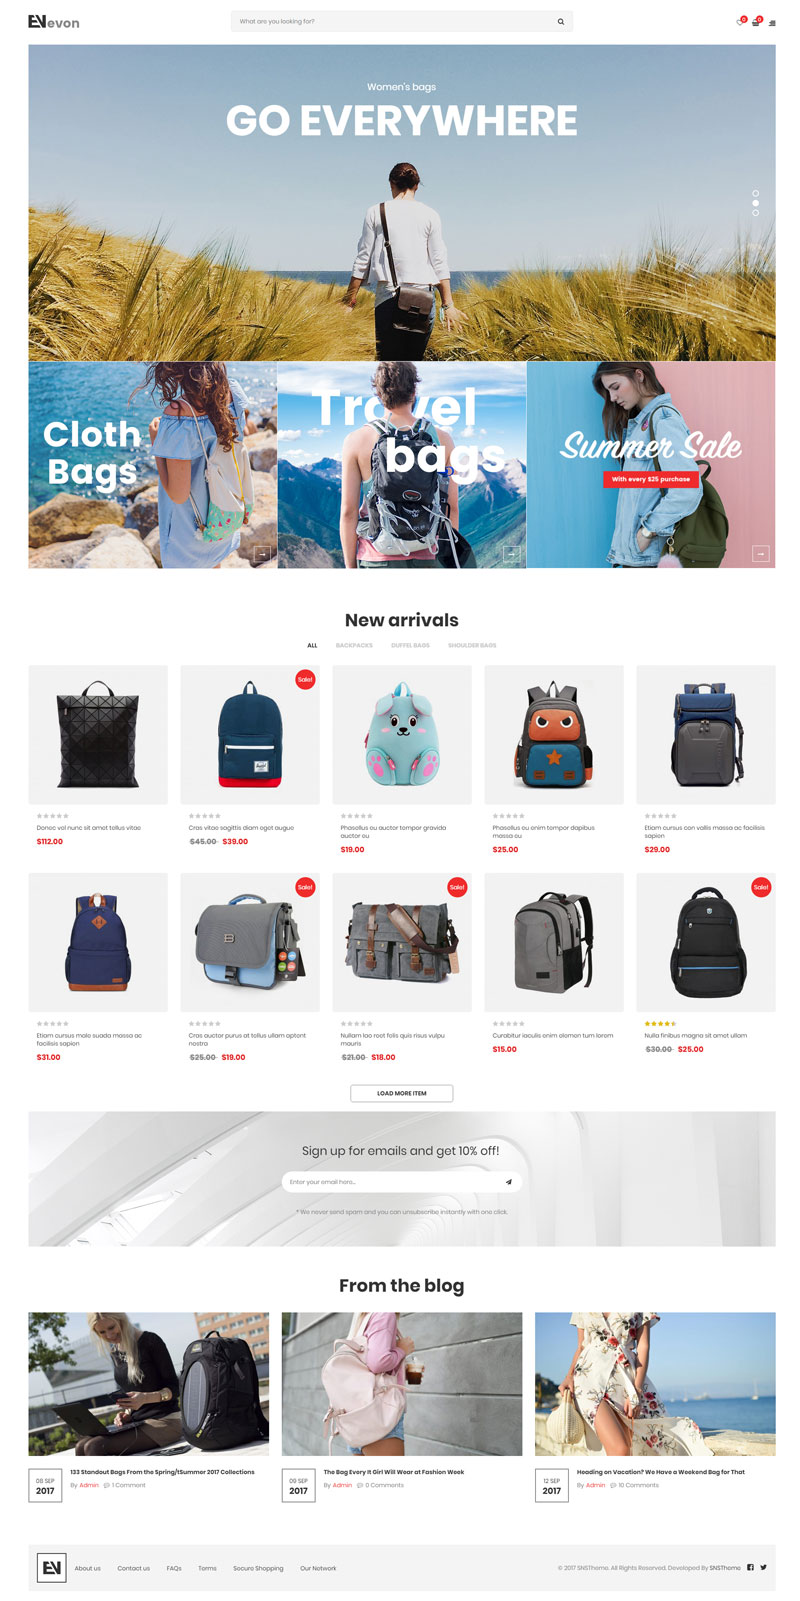 Evon-Bag-Store-WooCommerce-WordPress-Theme